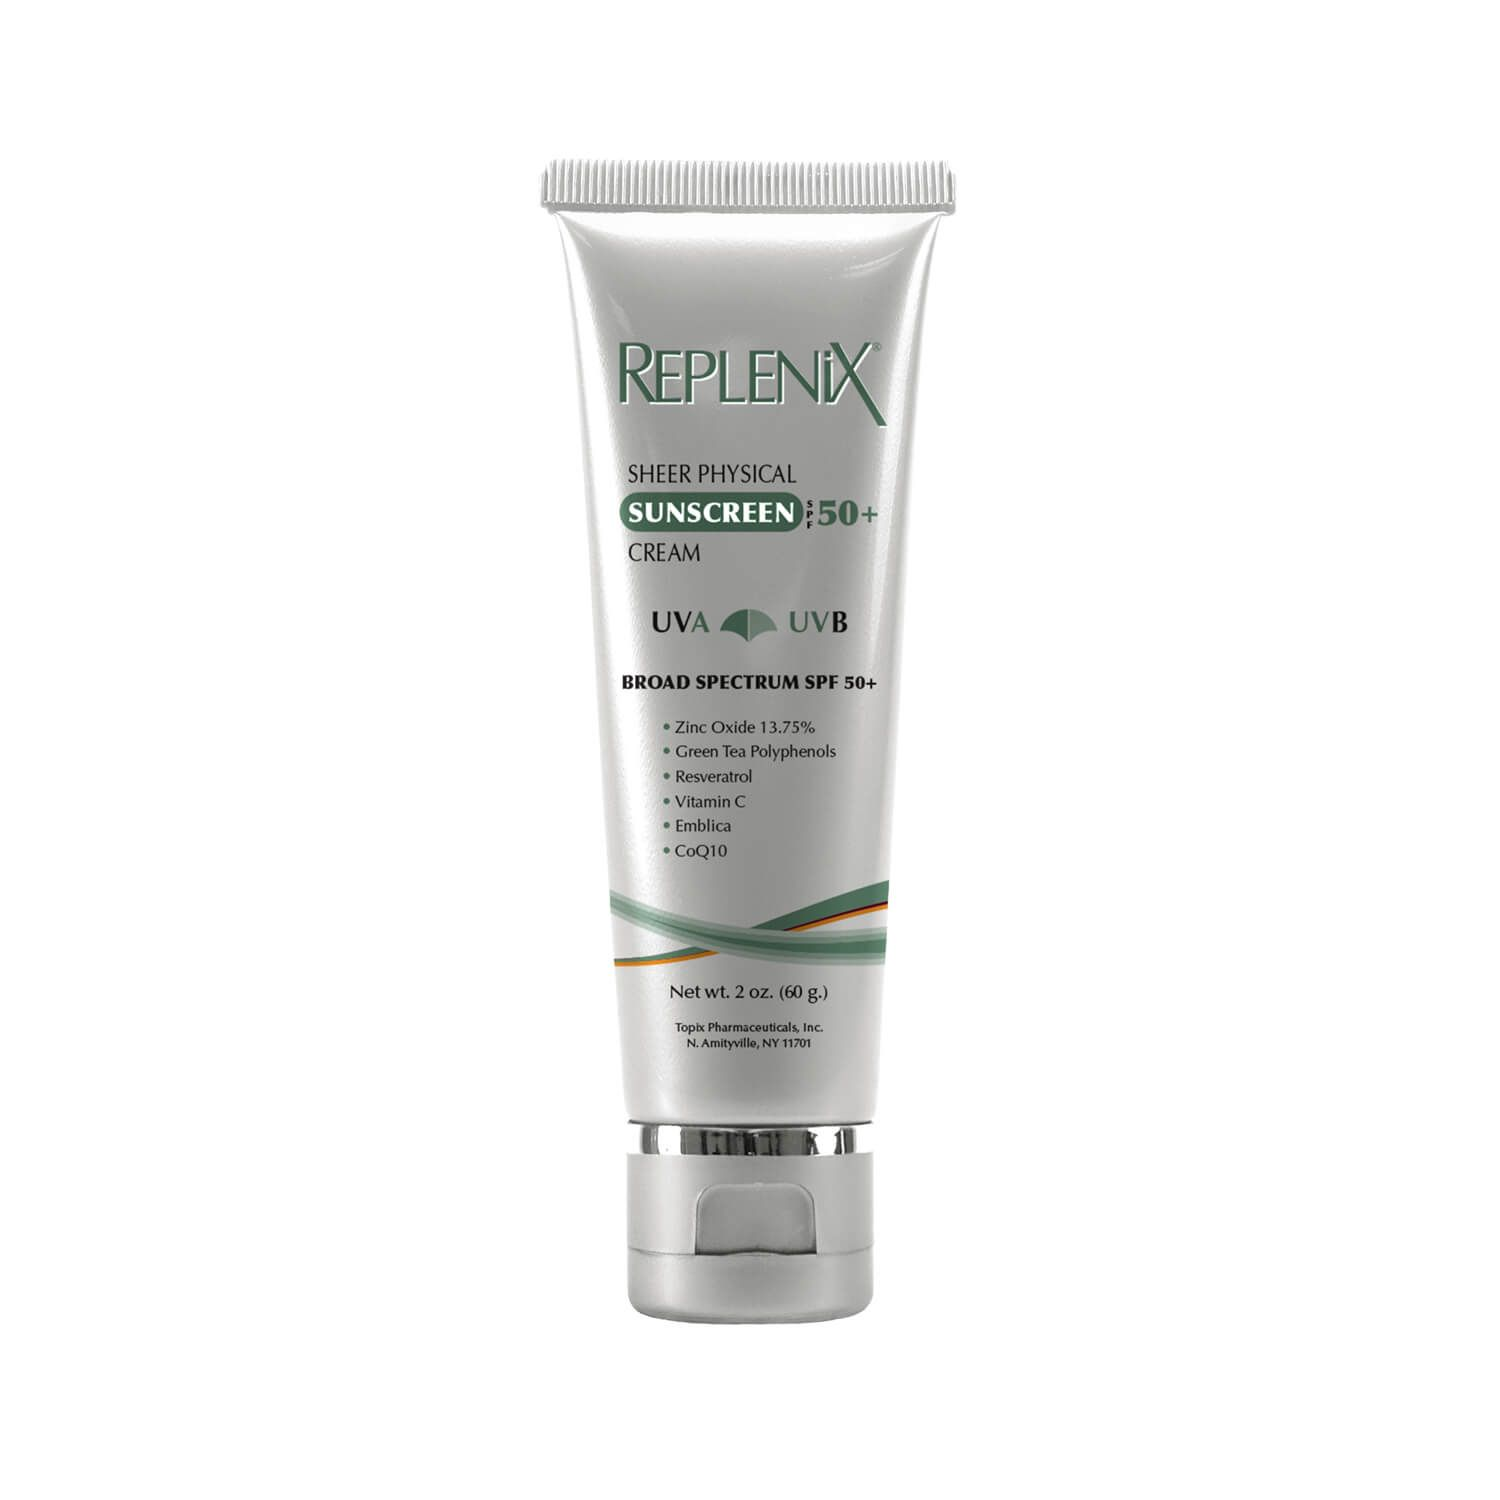 Replenix Sheer Physical Sunscreen Cream Spf 50 Sunscreen